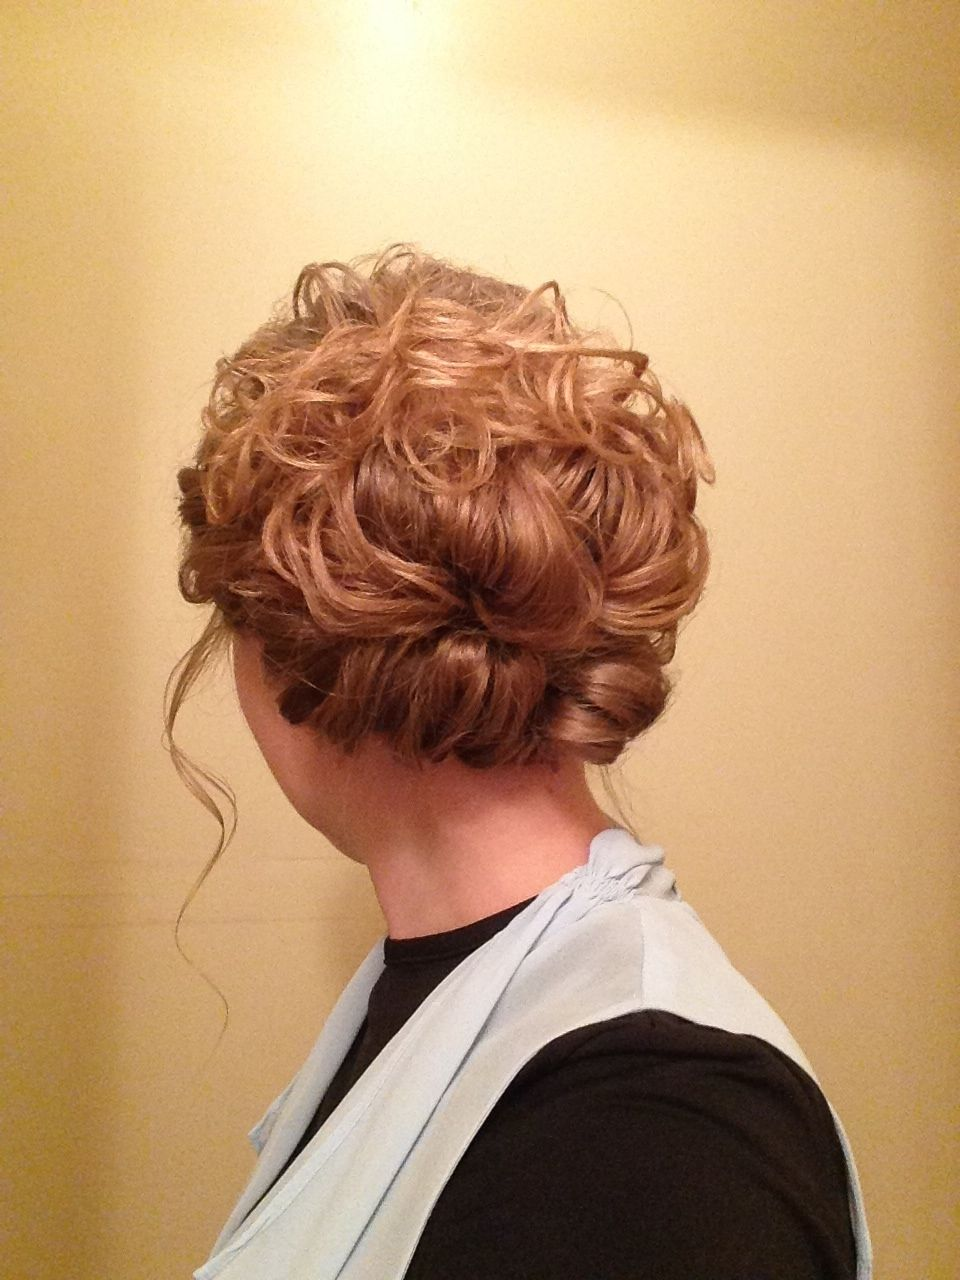 Pentecostal easy curly updo hairstyles pinterest